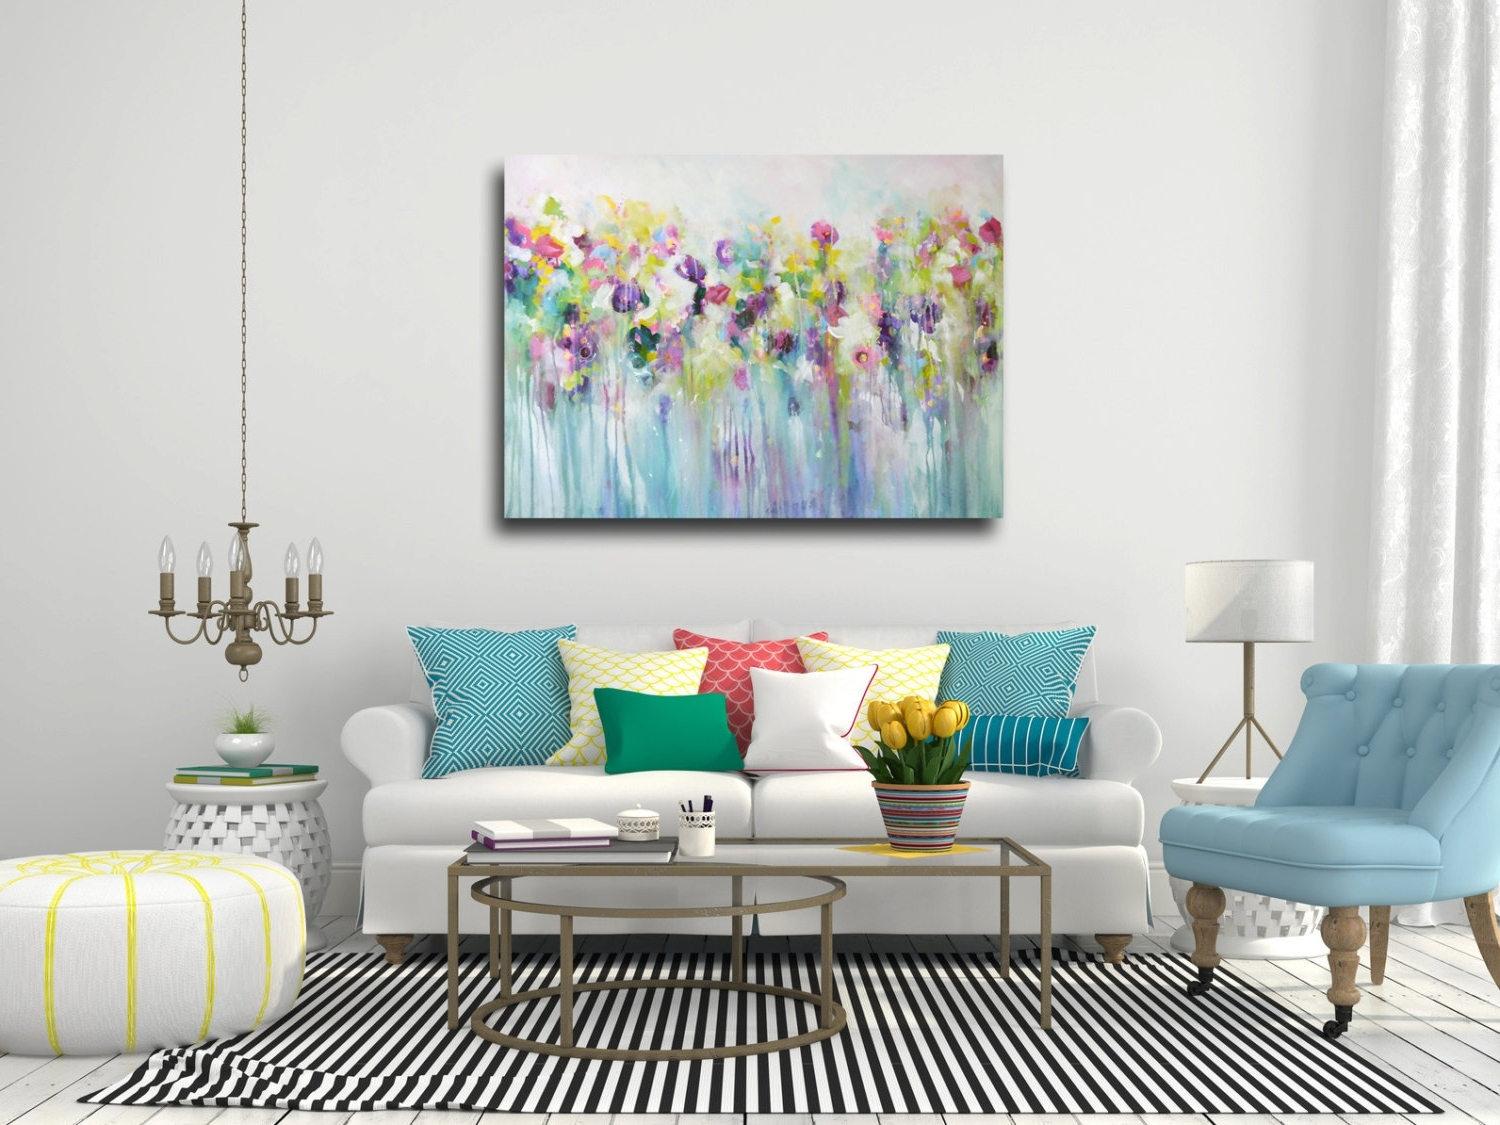 Preferred Abstract Expressionism Wall Art Pertaining To Fresh Inspiration Floral Wall Art With Large Canvas Abstract Print (View 14 of 15)